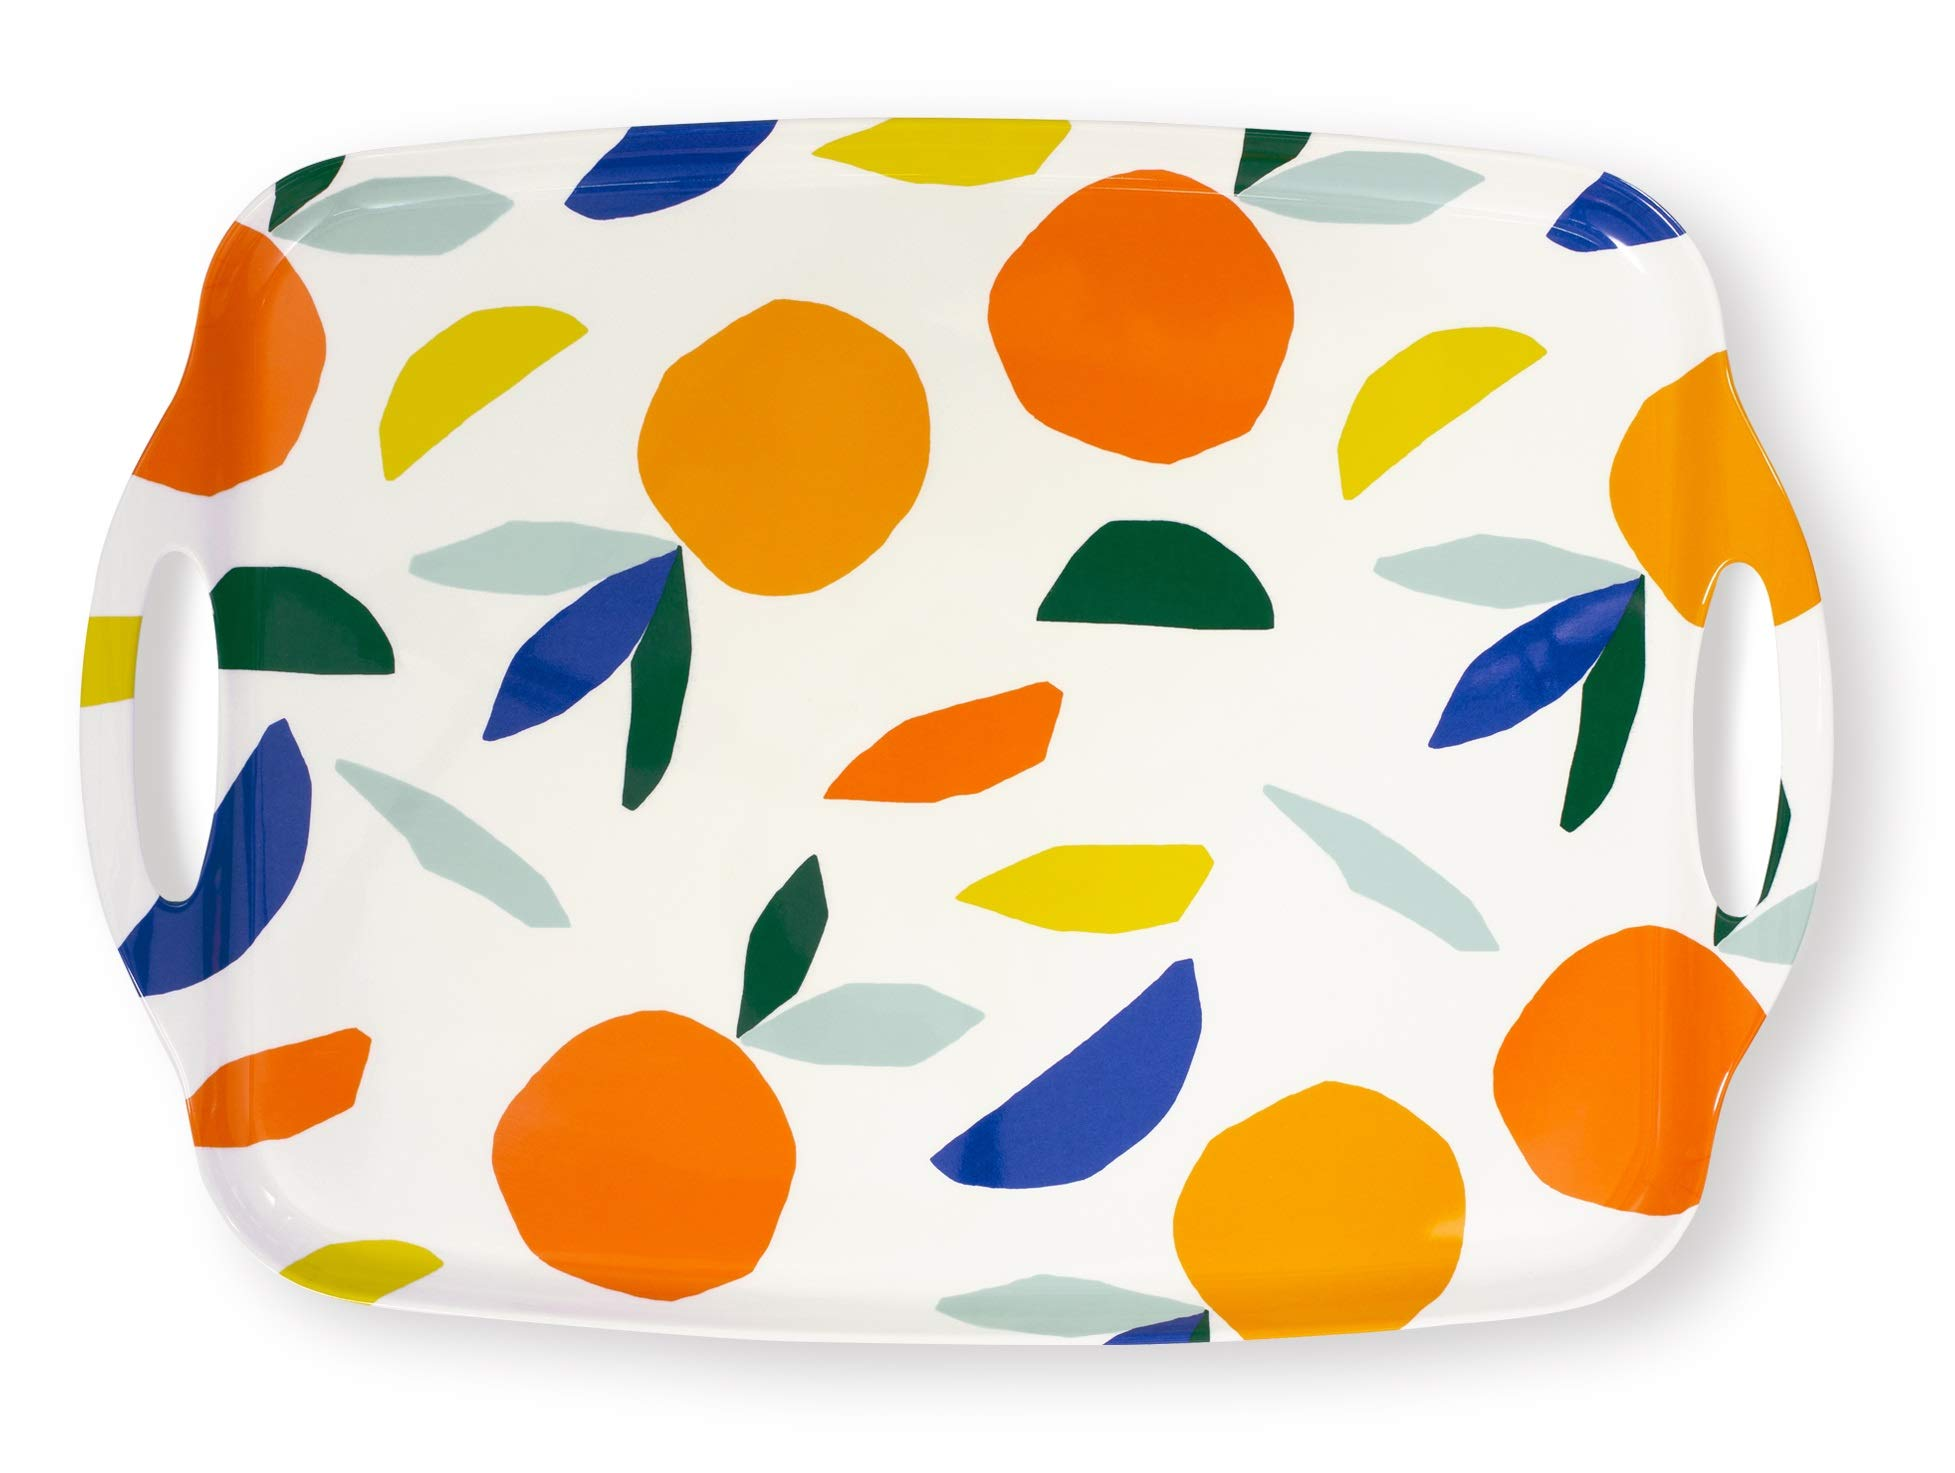 Kate Spade New York Melamine Serving Tray with Handles, 19.75 inches x 14 inches, Dishwasher Safe, Citrus Twist